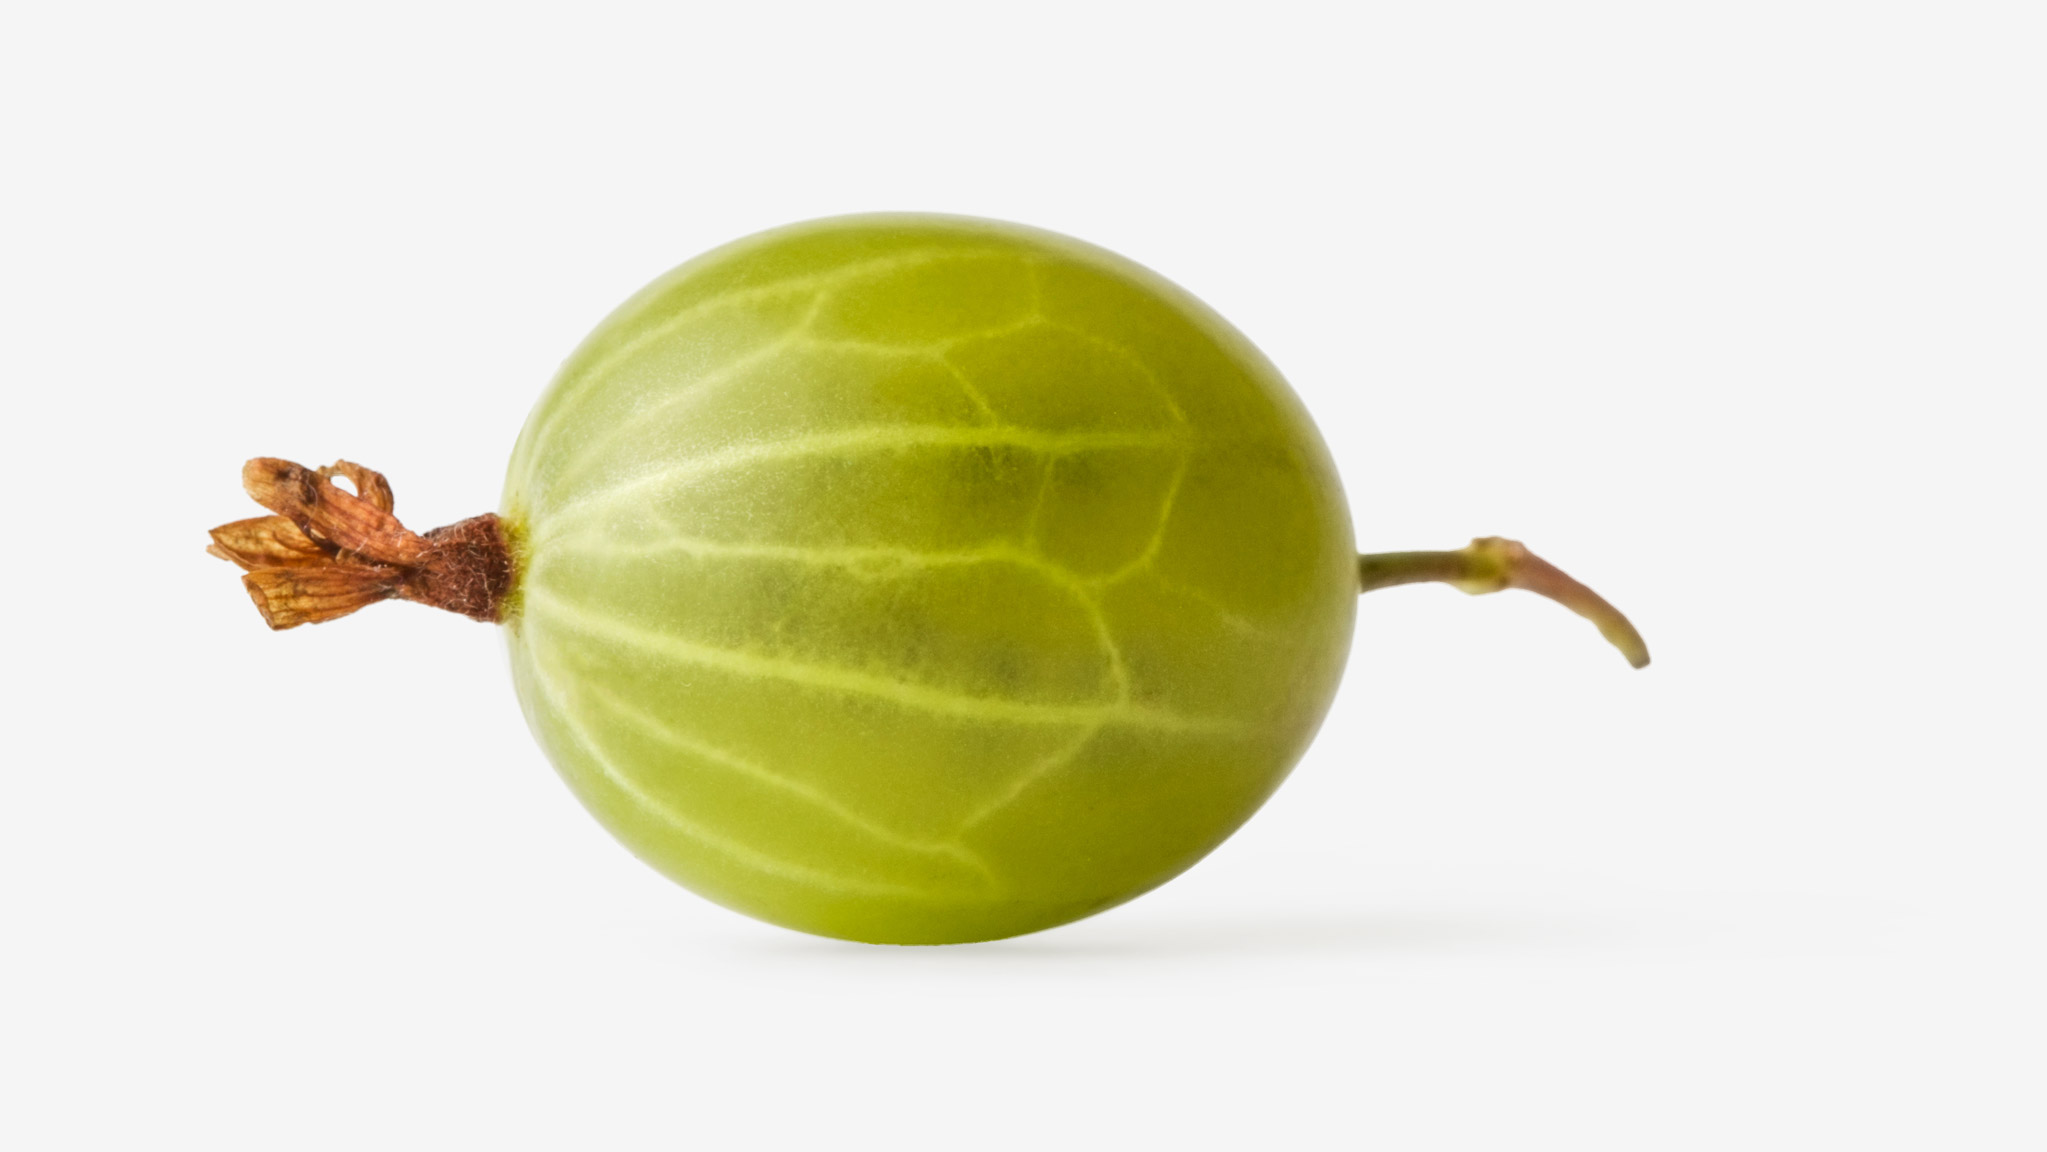 Gooseberry image asset with transparent background